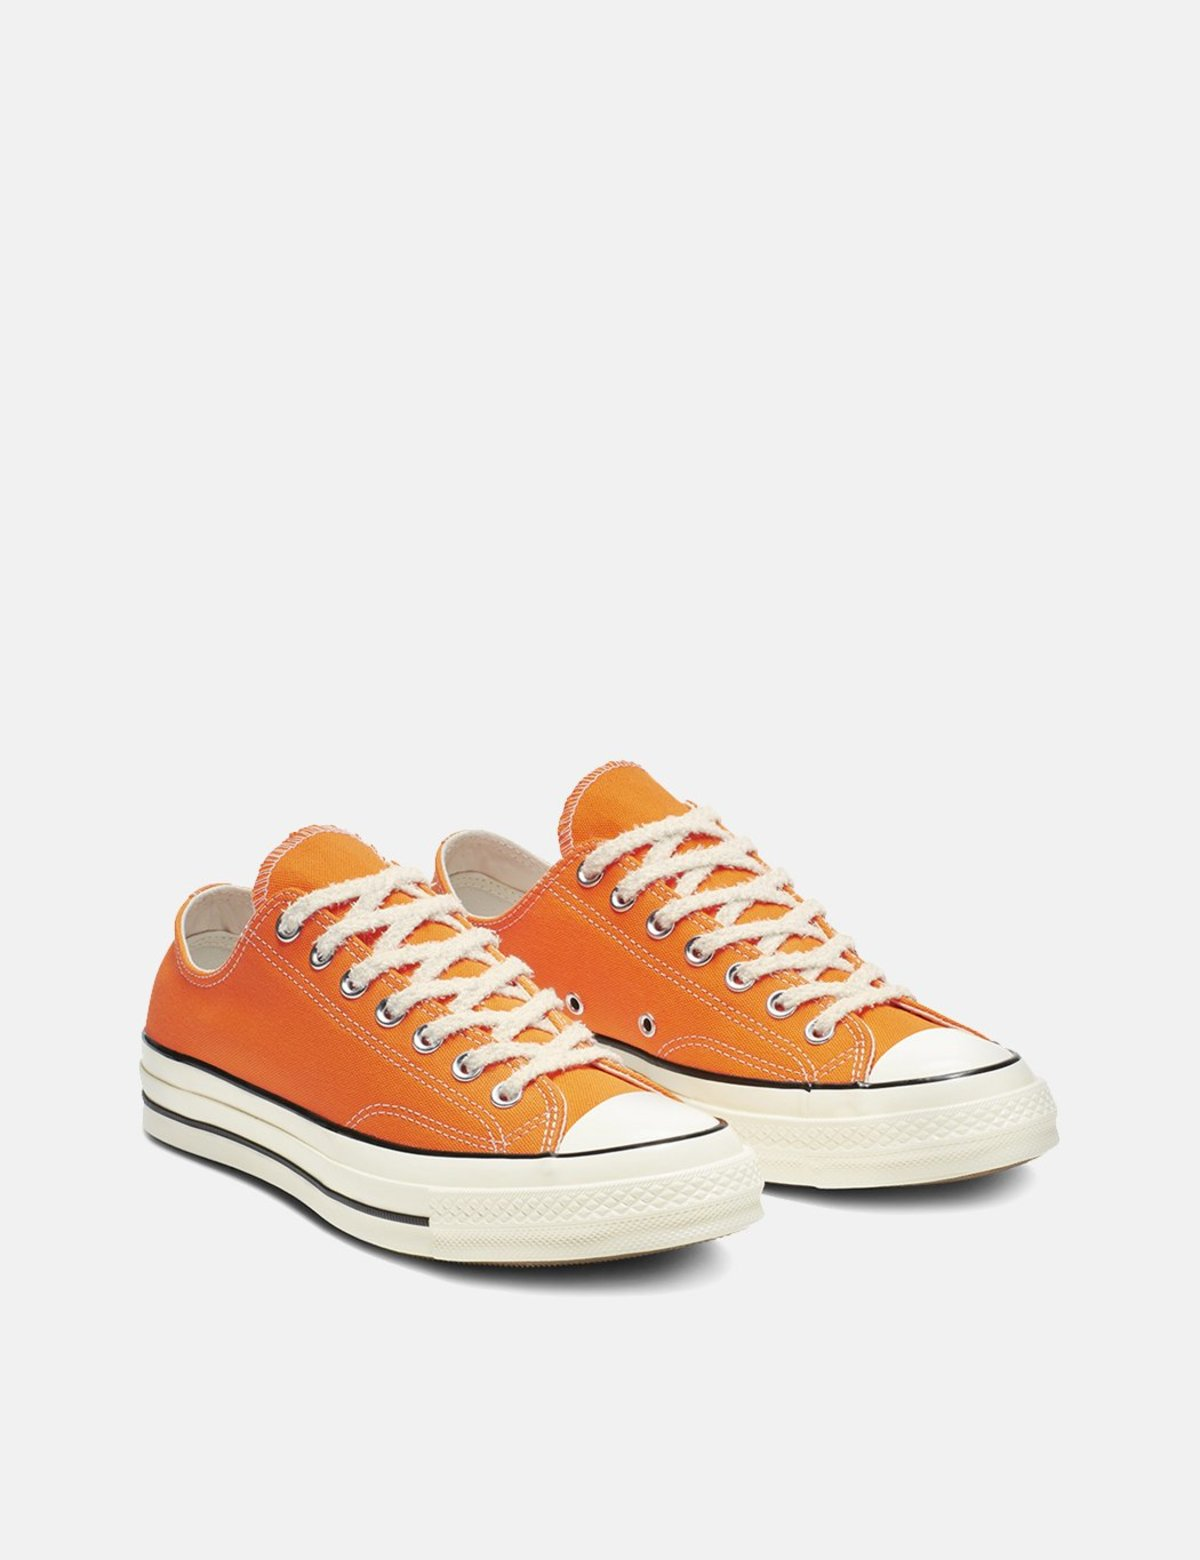 Converse 70's Chuck Taylor Low Sneakers